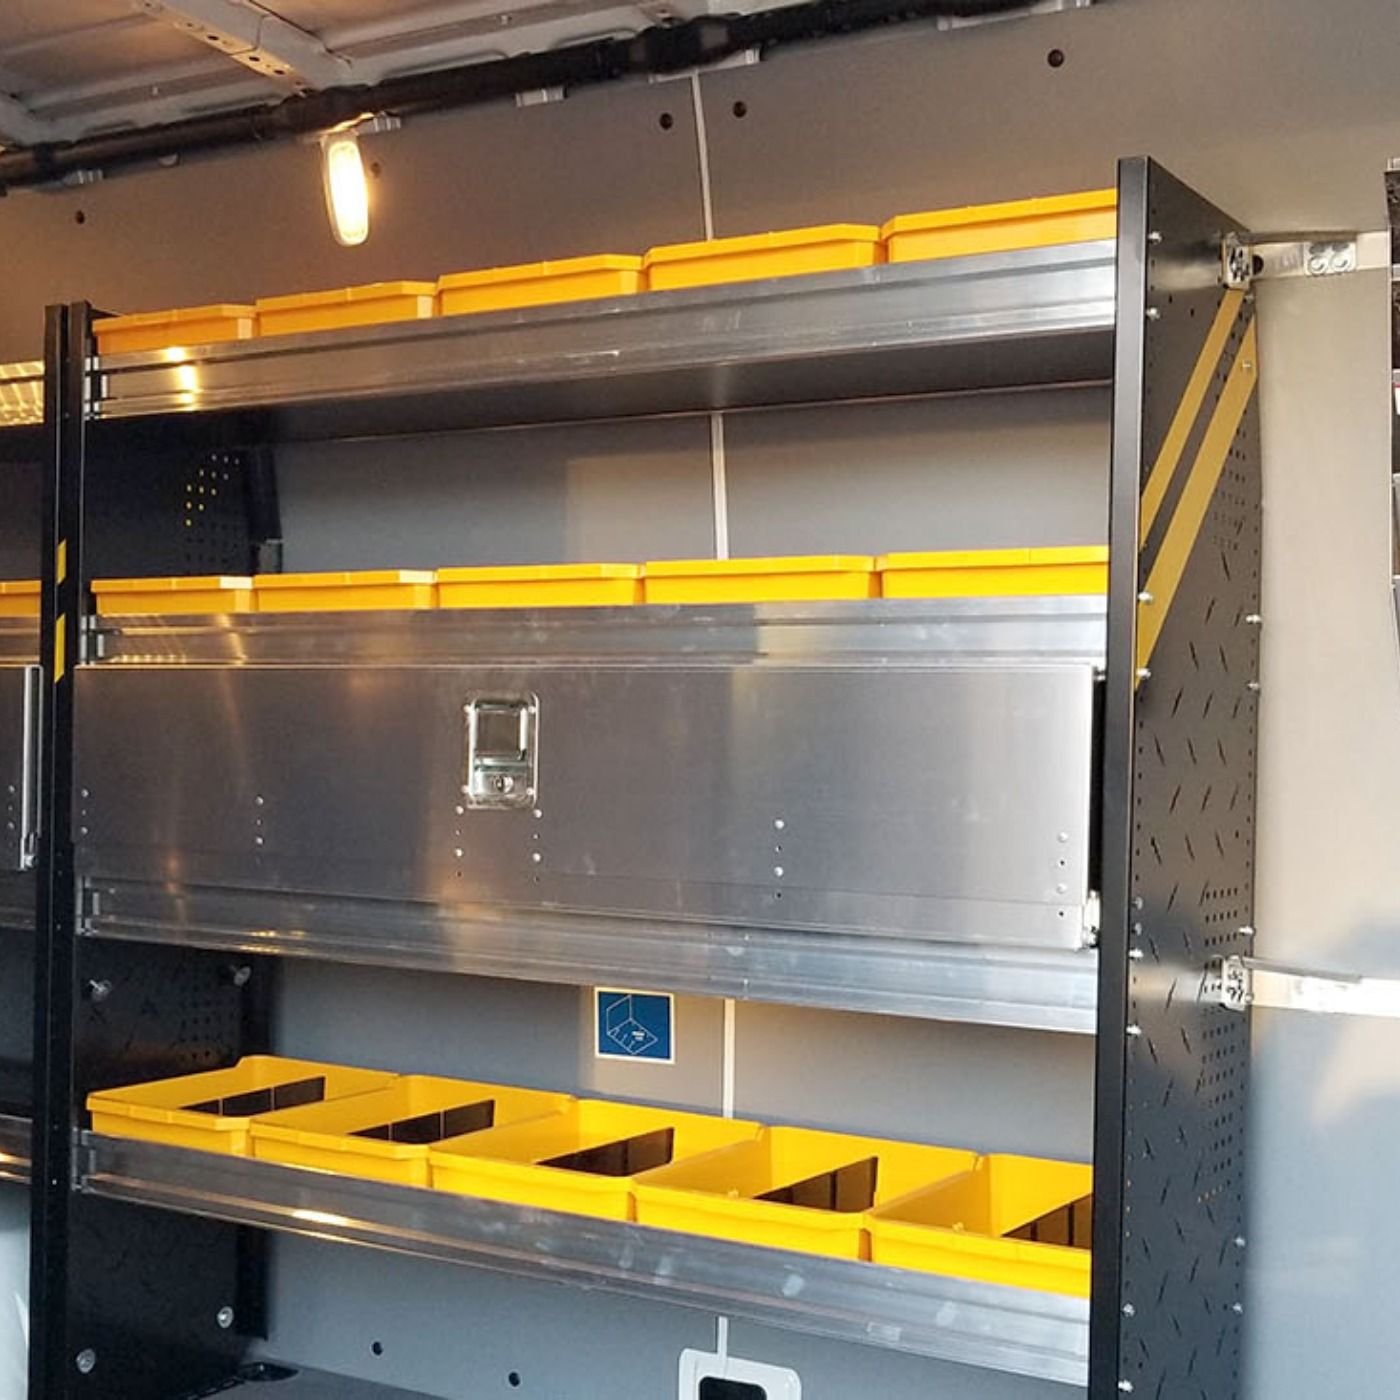 After being upfit with Ranger Design shelving, a partition